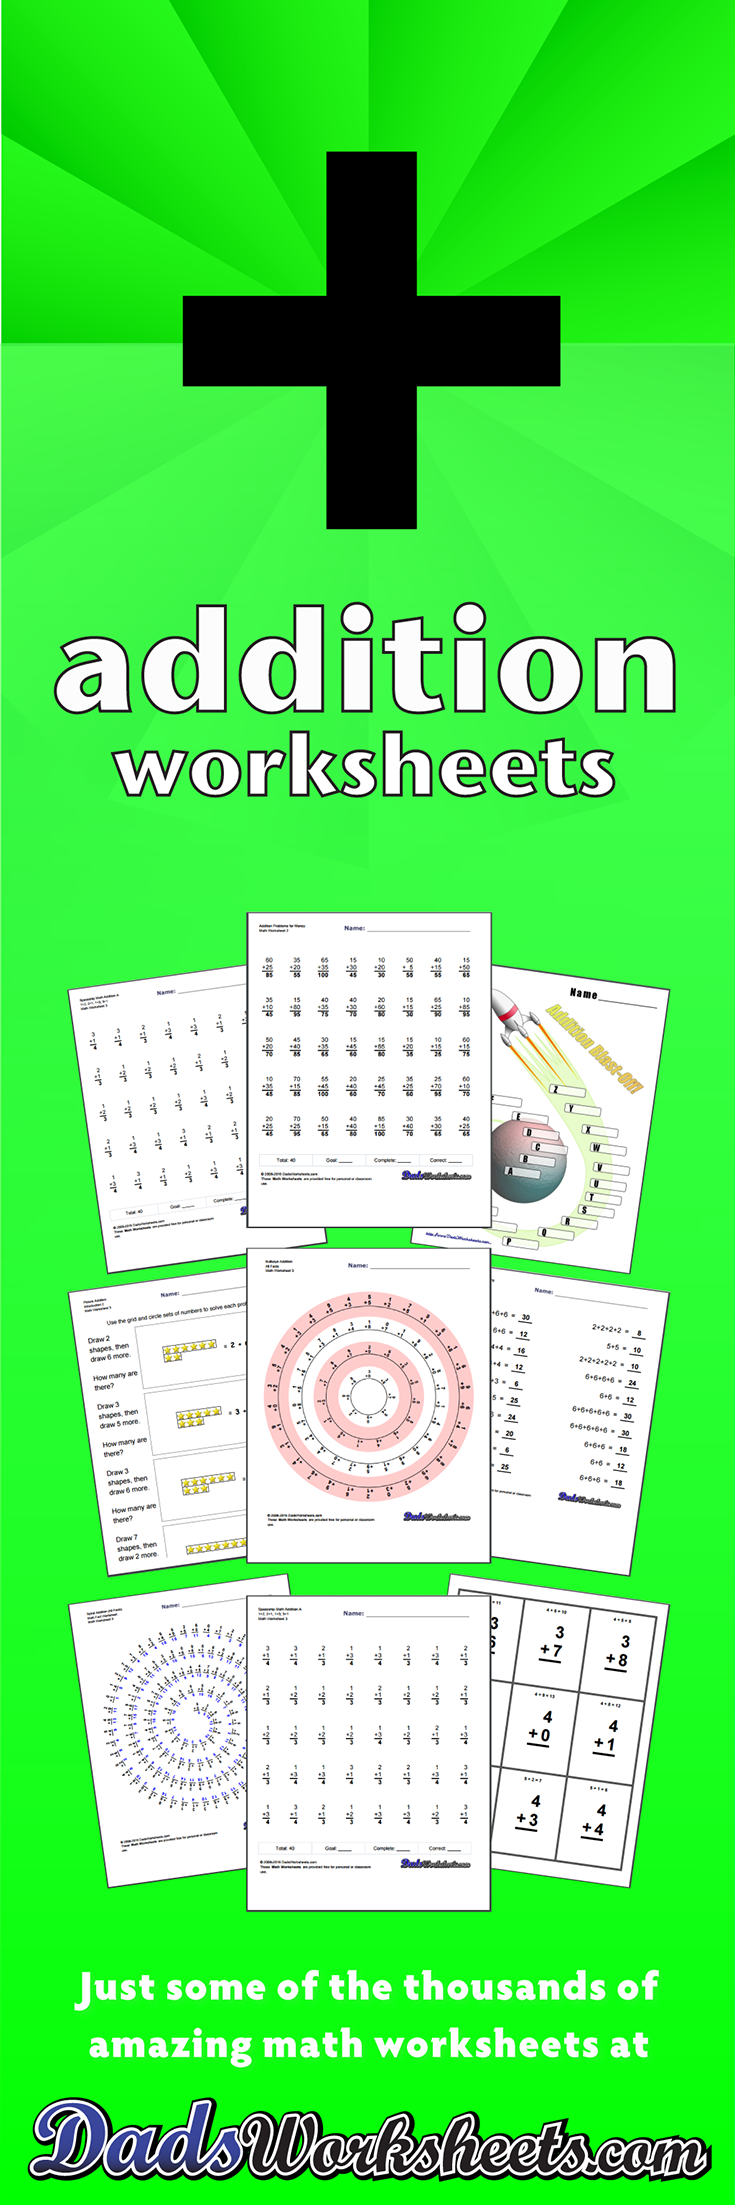 Worksheets – Addition Worksheets with Pictures